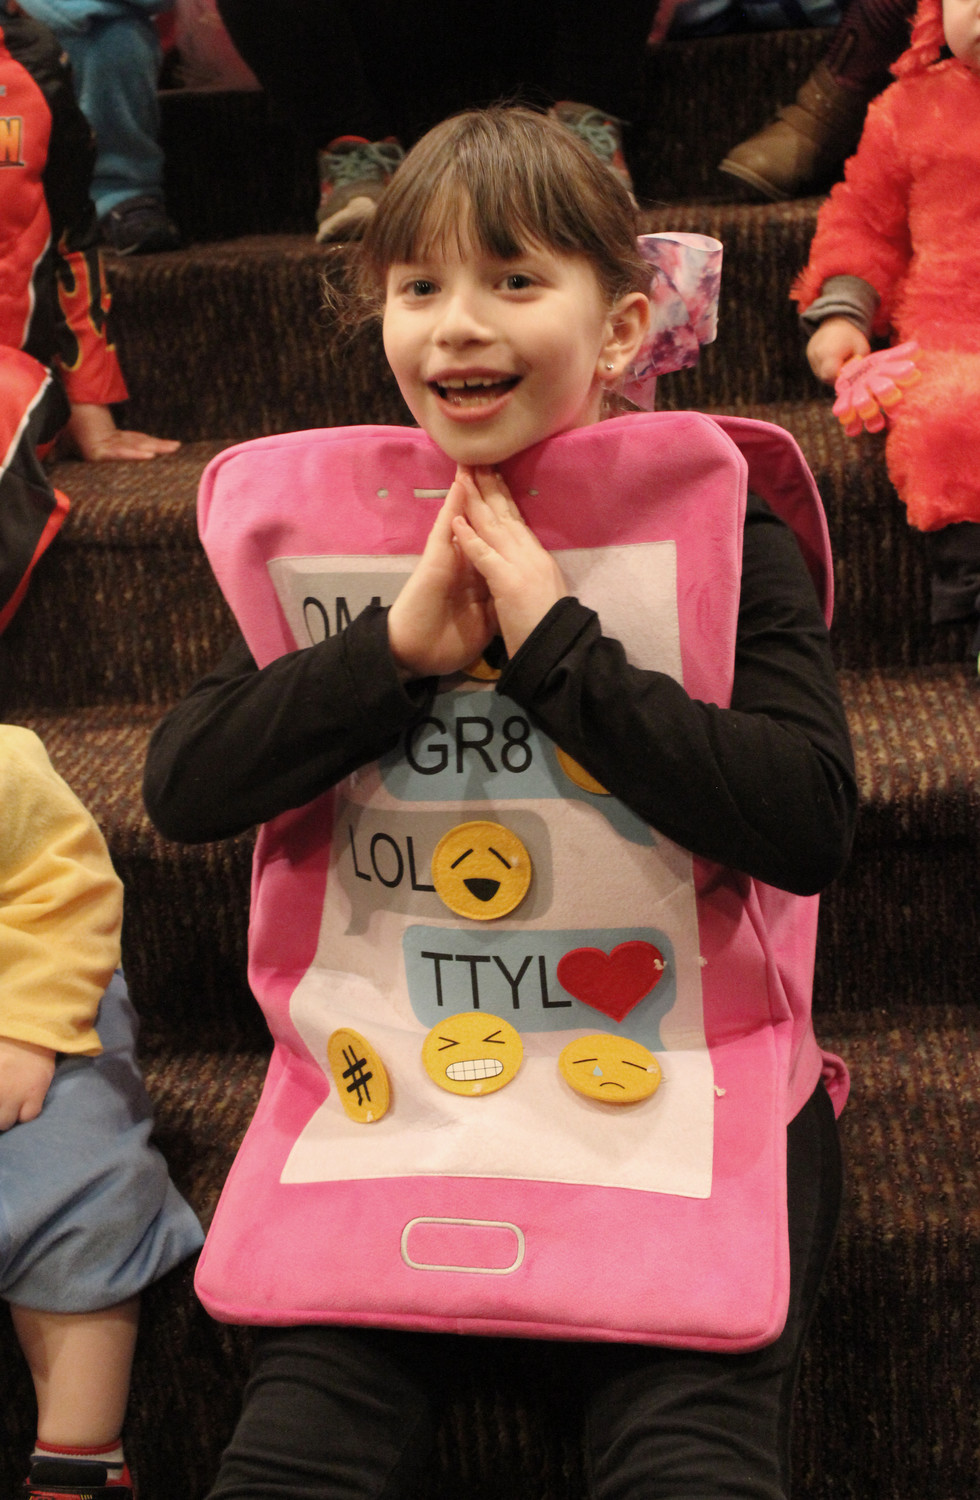 Adison Hurwitz, 7, was one of the contest winners for her I-Phone costume.